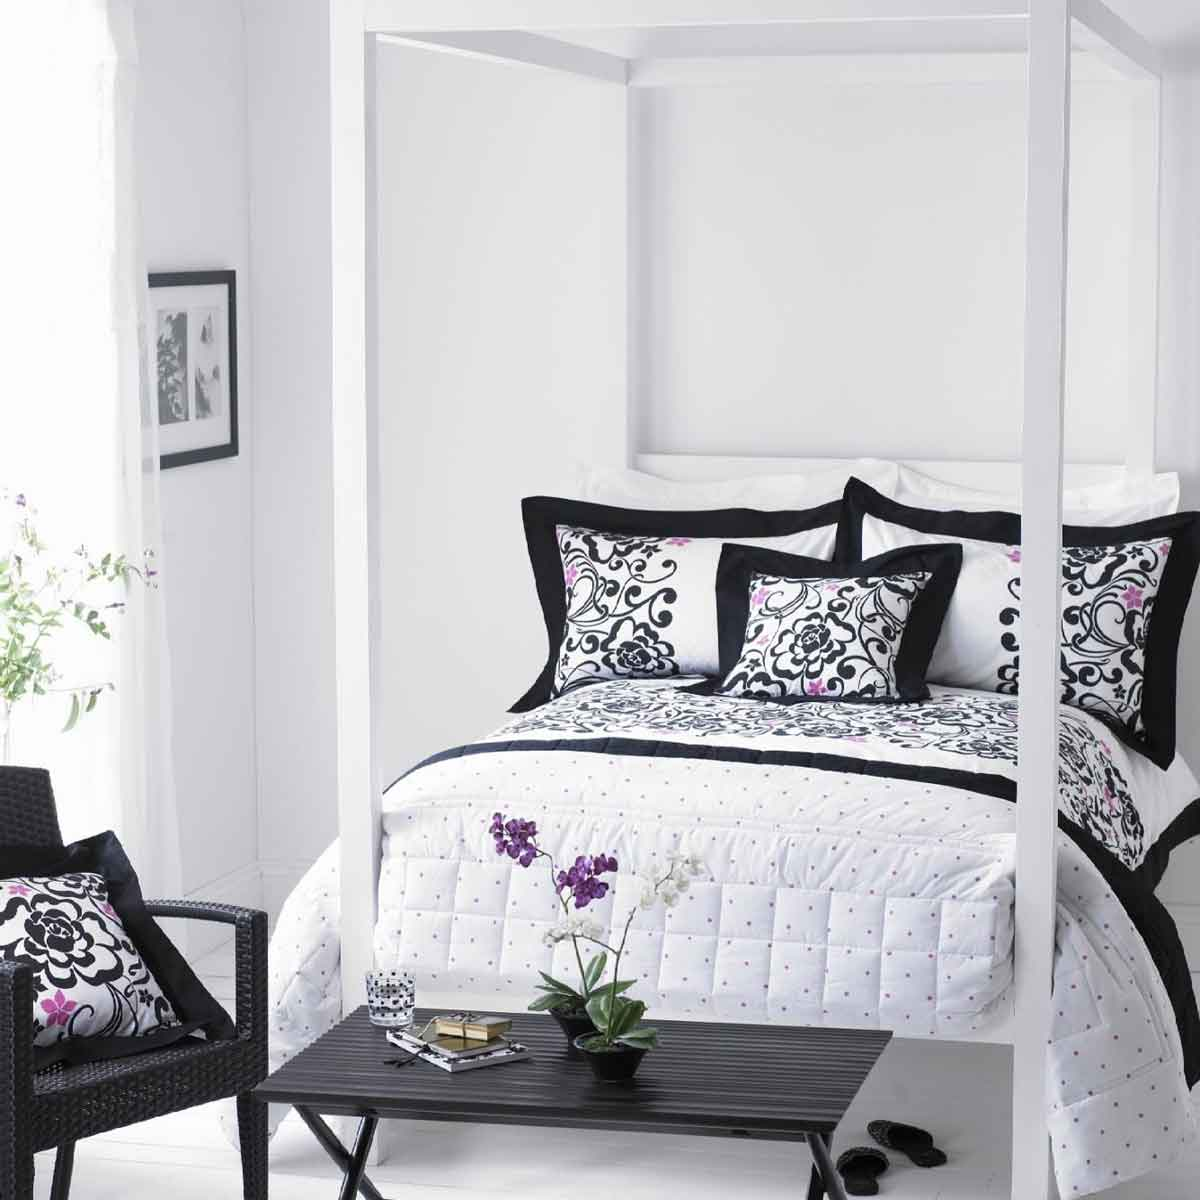 Black white grey bedroom 2017 grasscloth wallpaper for Black and grey bedroom ideas